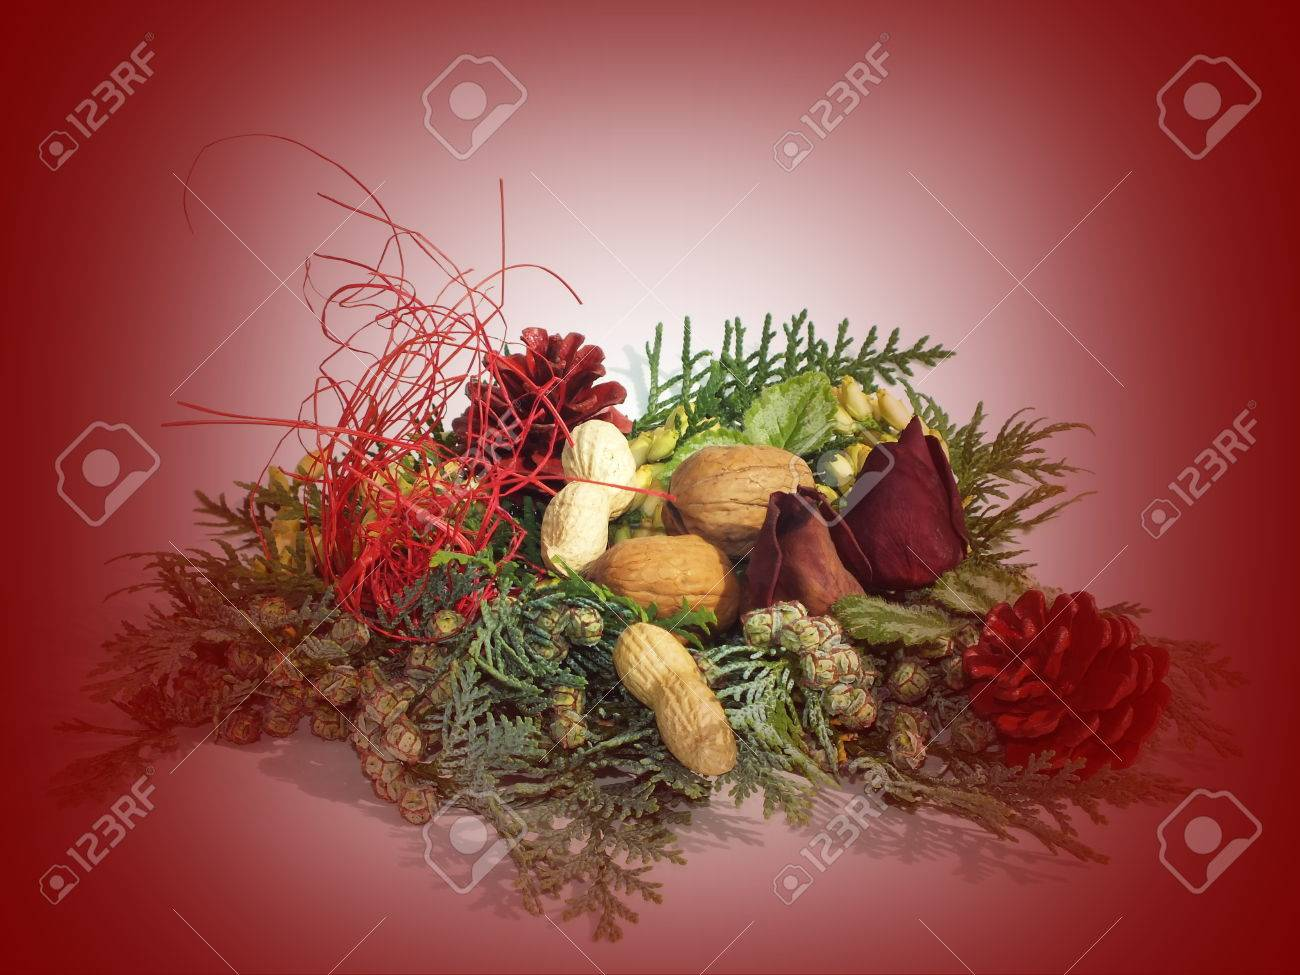 background with Christmas decoration from natural materials Stock Photo - 22211531